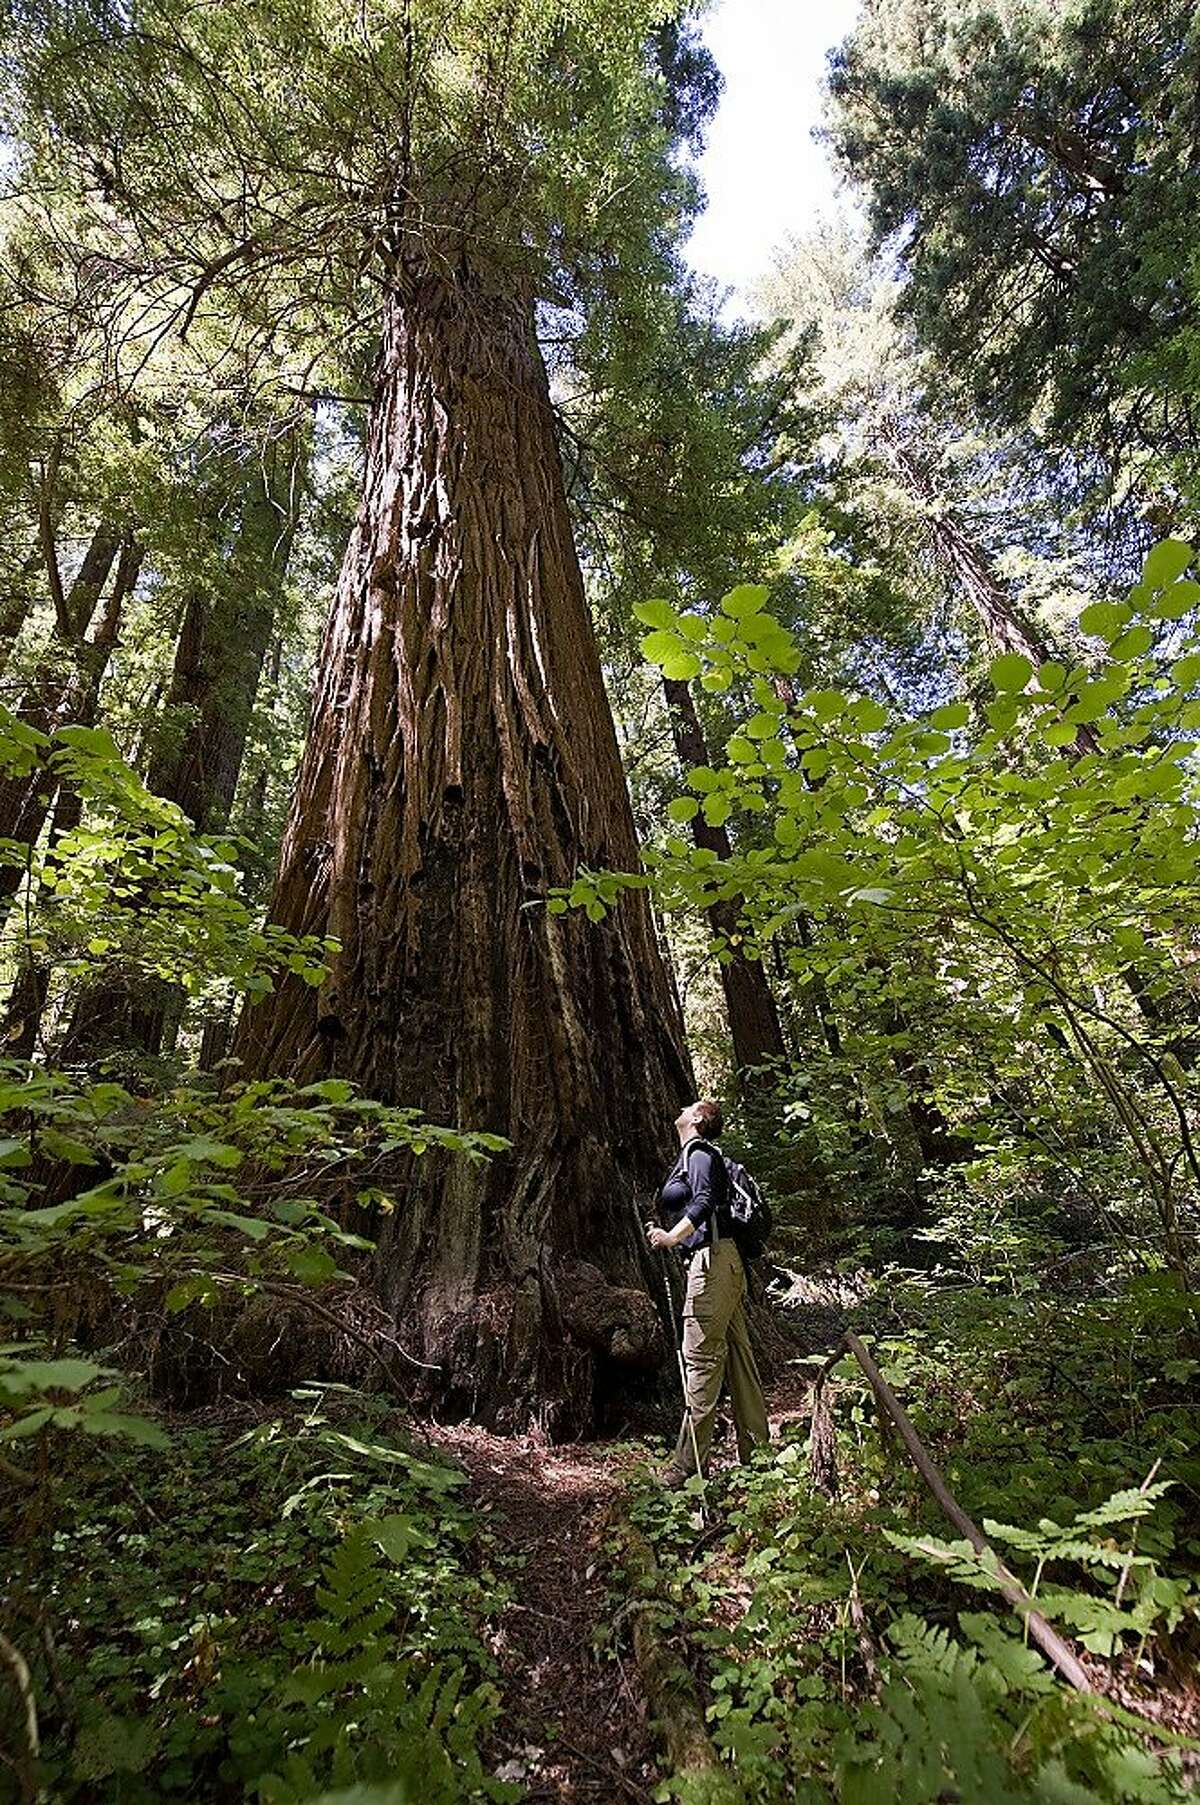 A hiker explores Portola Redwoods State Park, which has reopened after the wildfire.